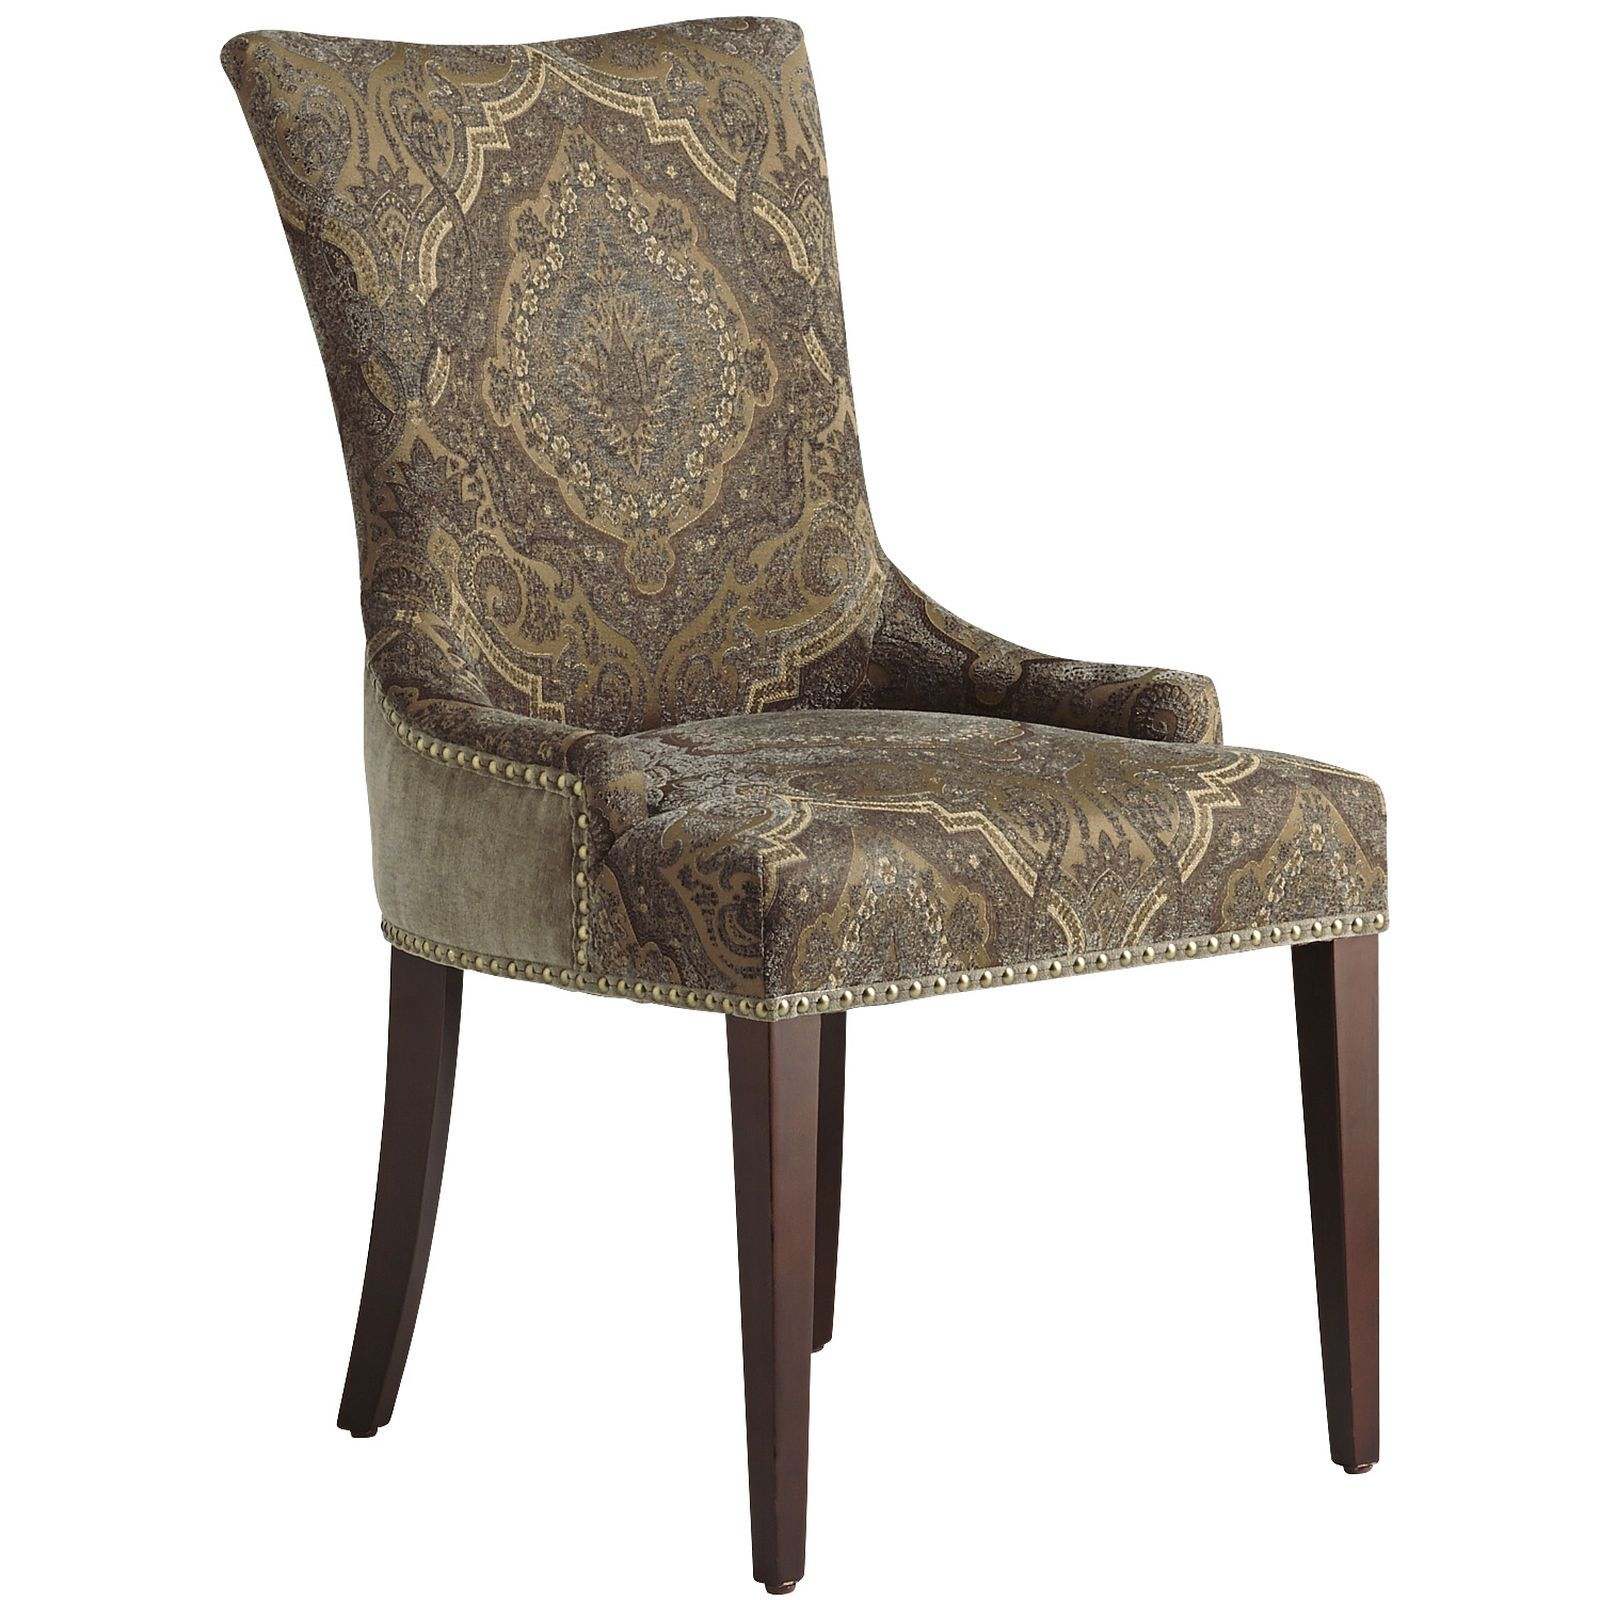 Awesome Adelle Seagrass Dining Chair With Espresso Wood The Center Home Interior And Landscaping Synyenasavecom